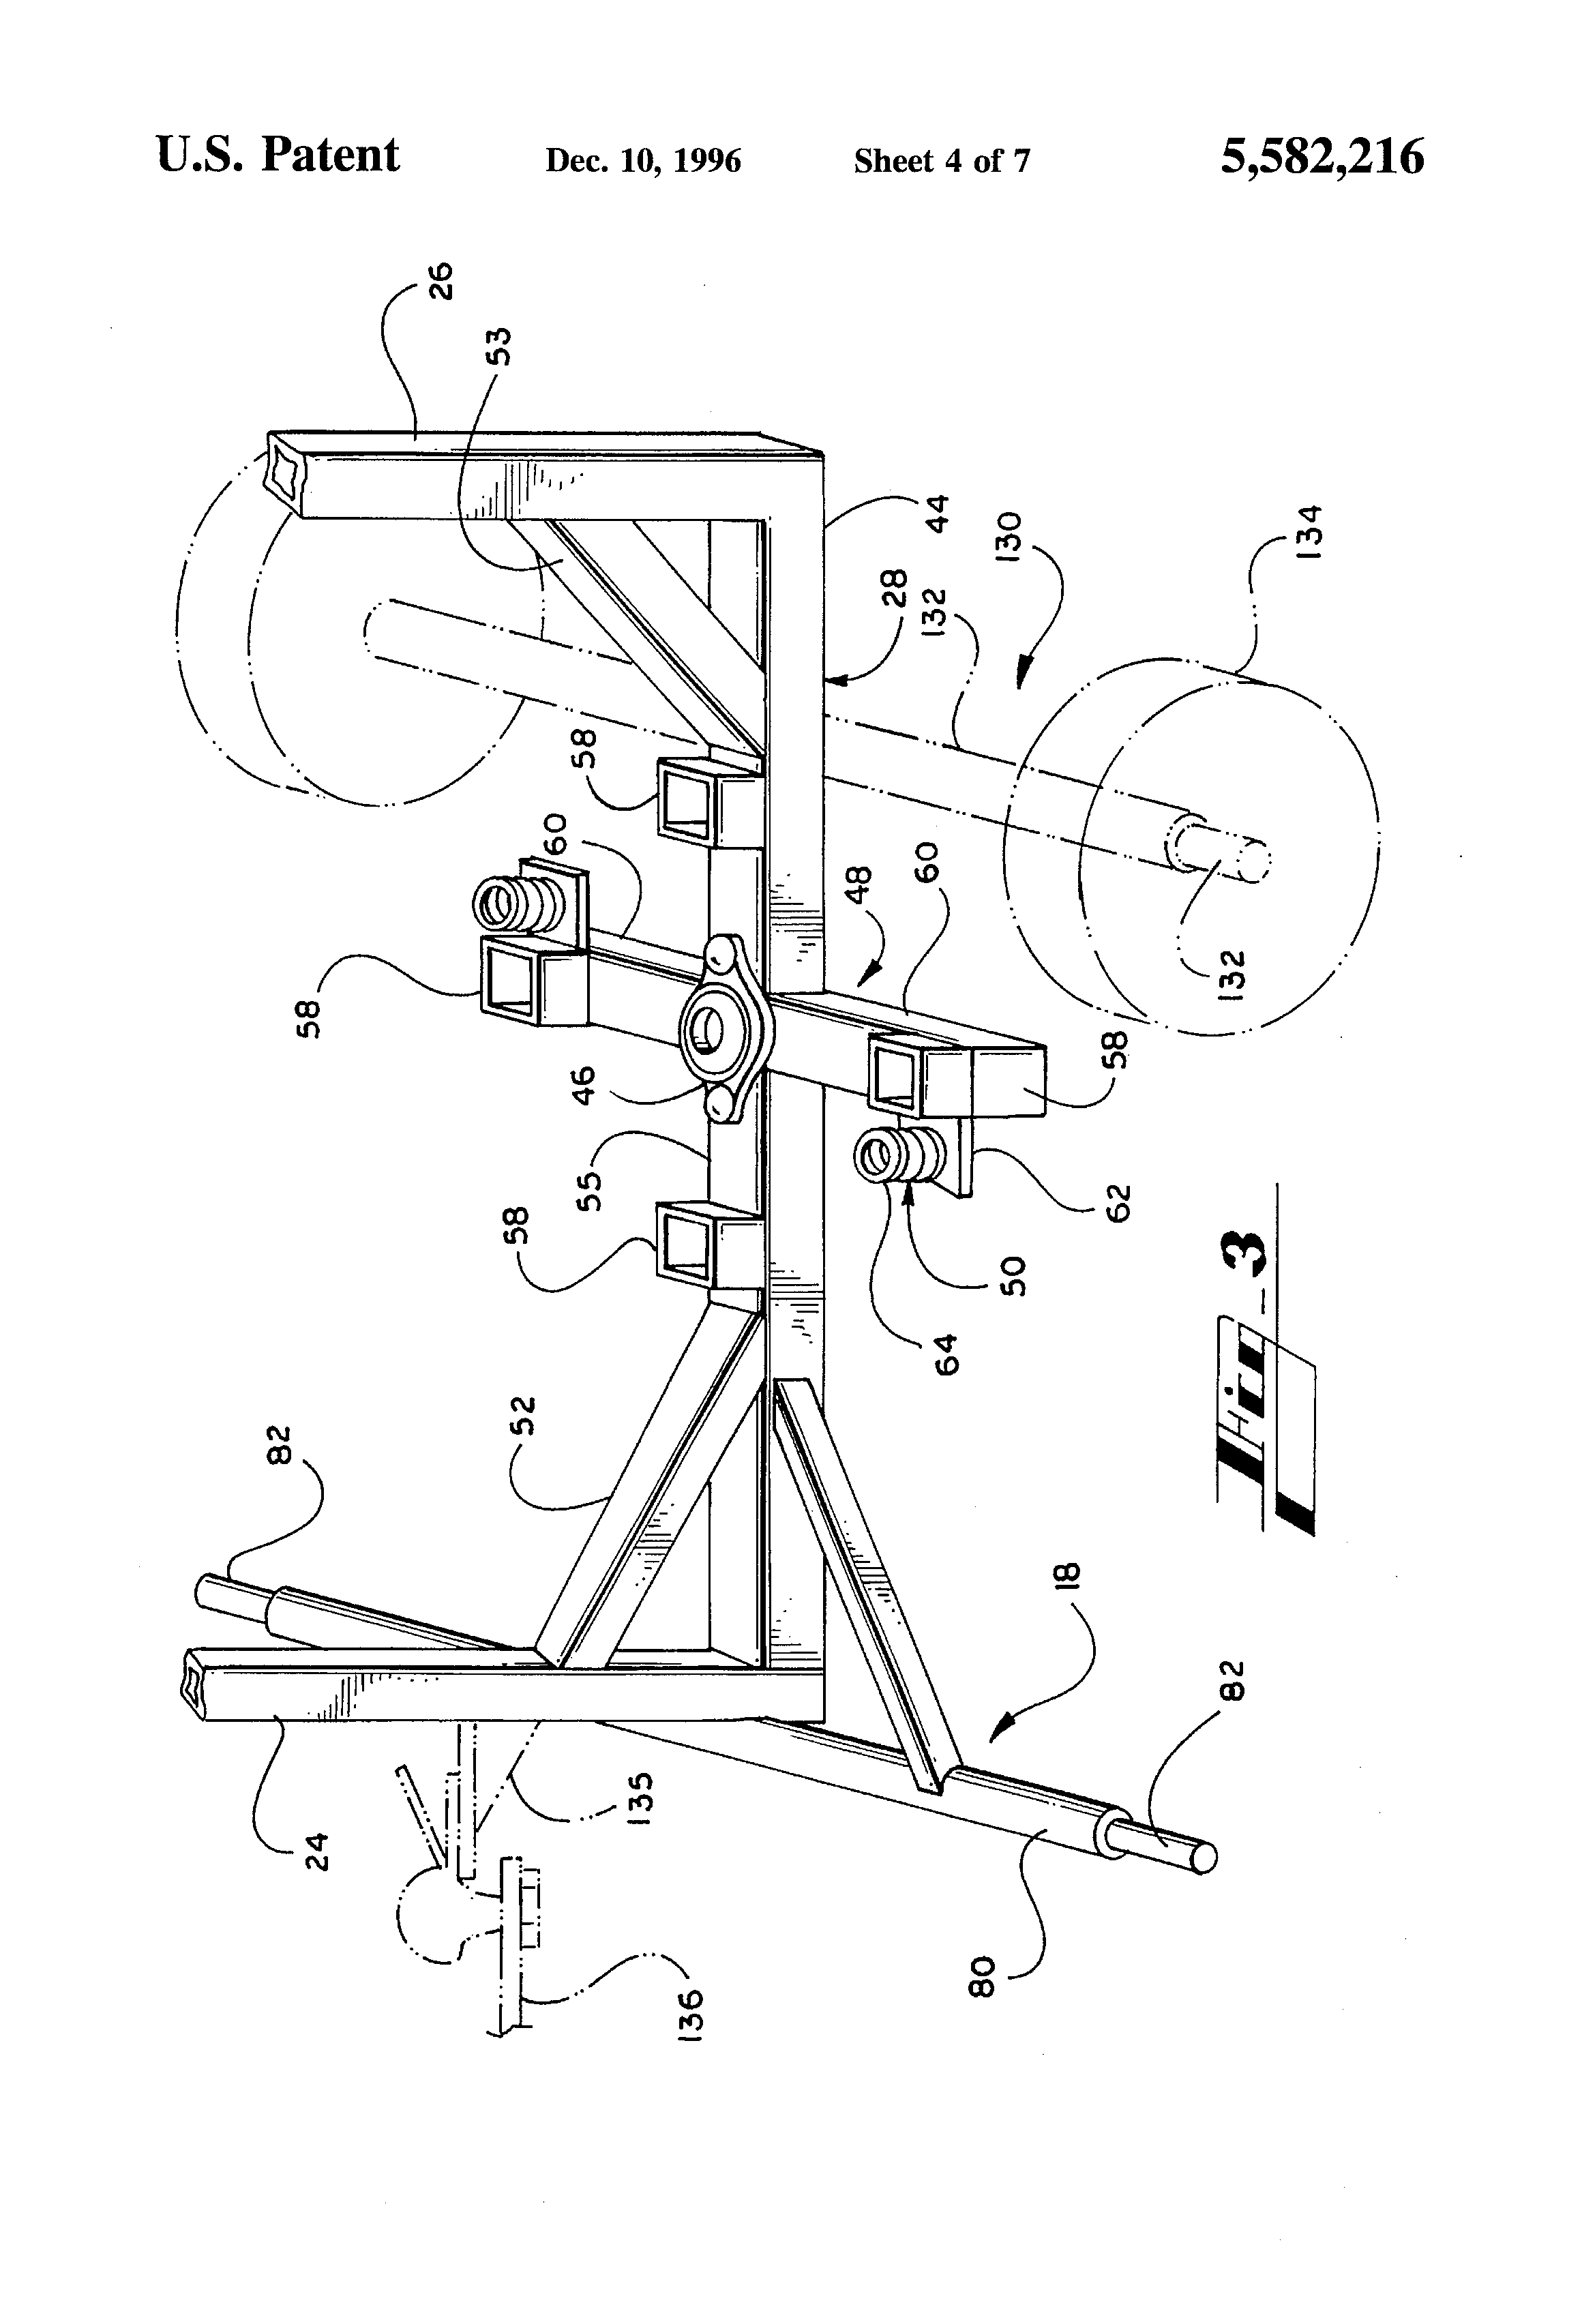 Apparatus And Method For Installing Cable : Patent us apparatus and method for installing